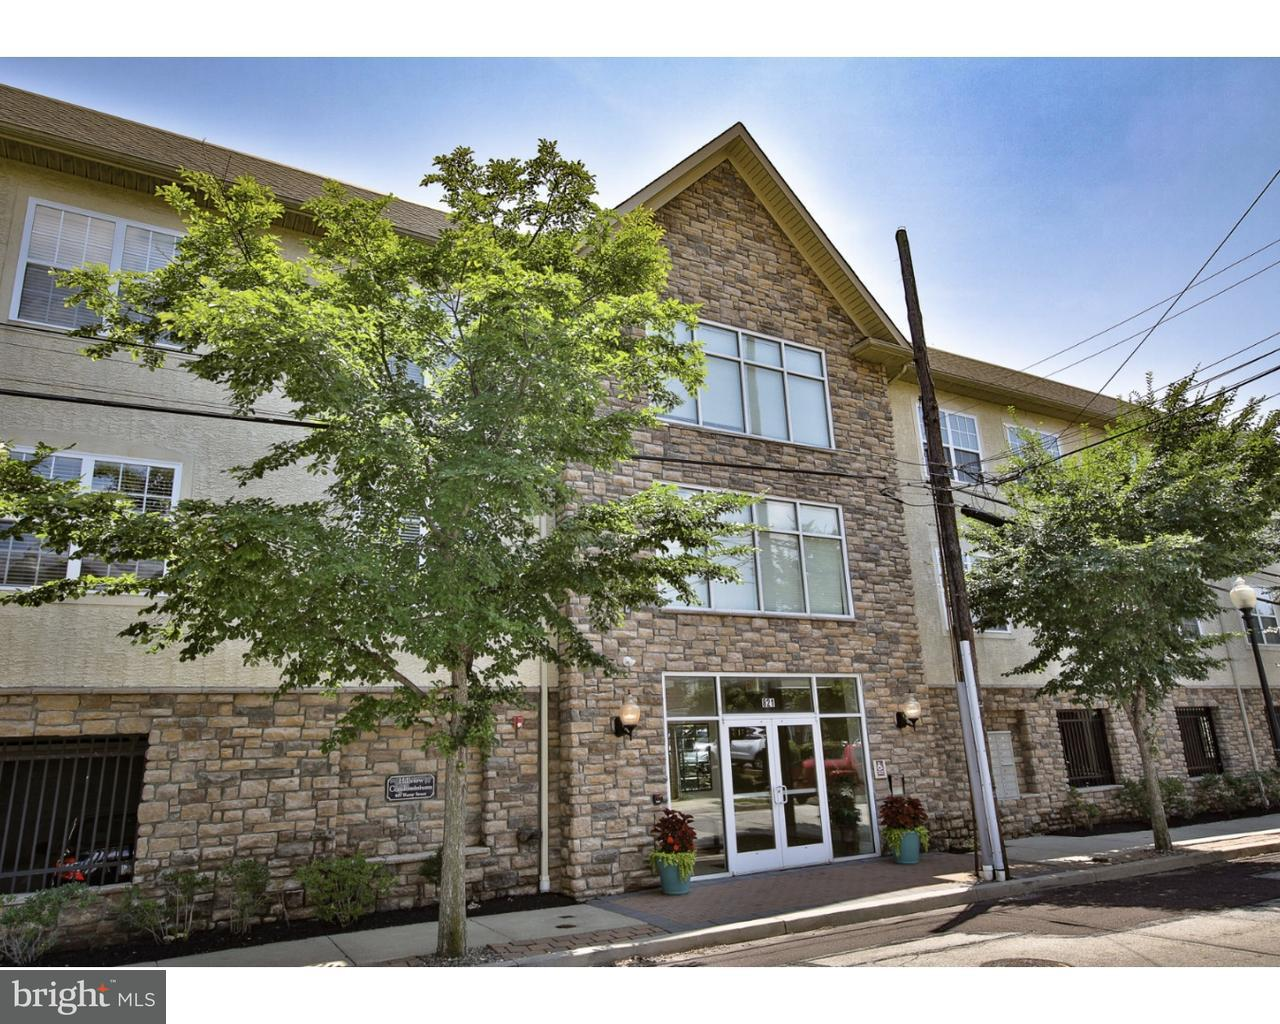 Single Family Home for Sale at 821 HARRY ST #202 Conshohocken, Pennsylvania 19428 United States